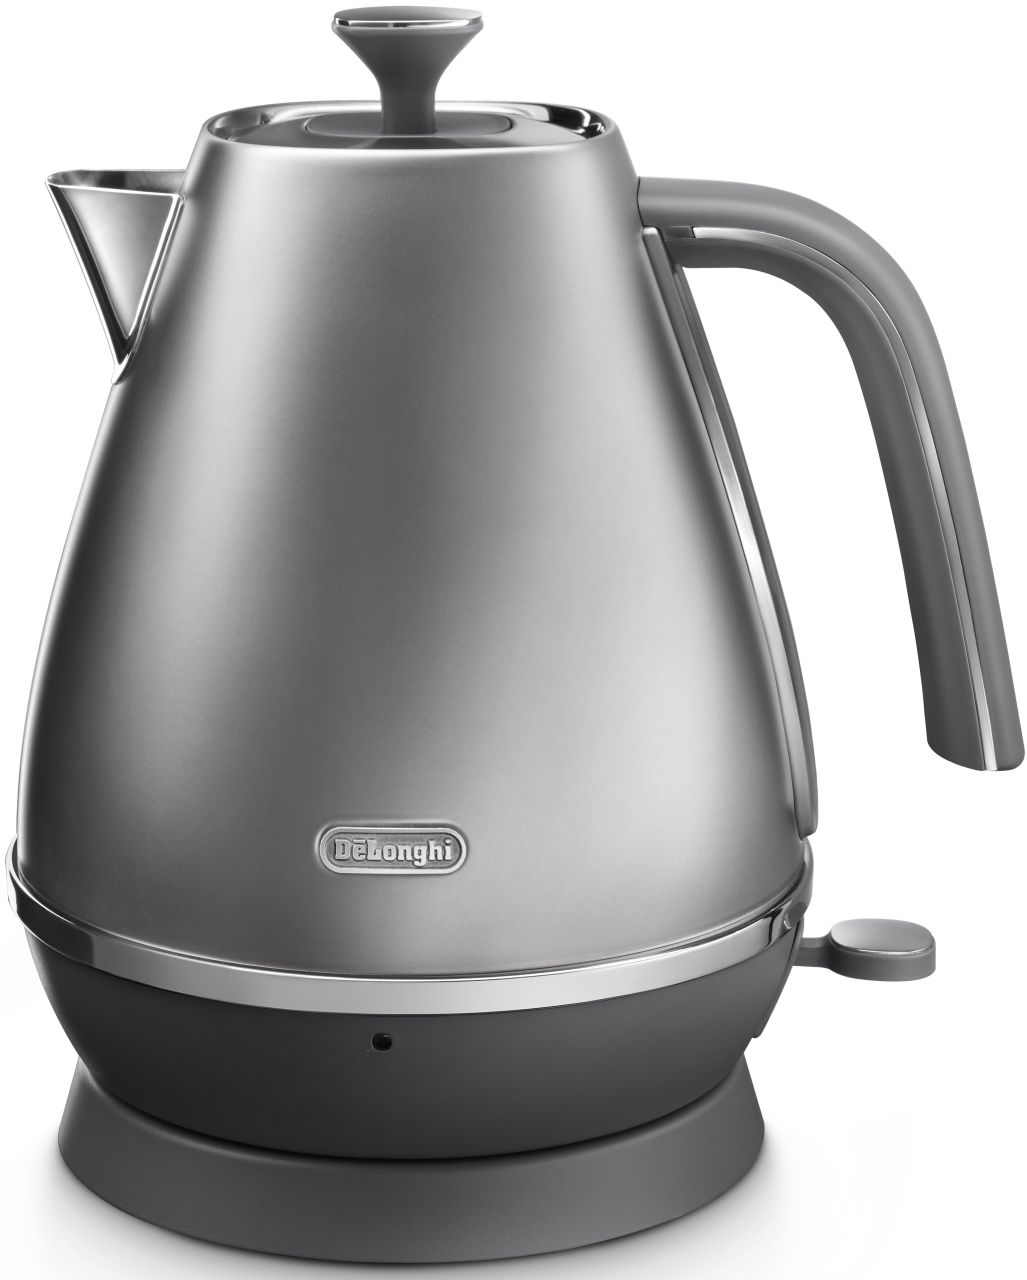 Delonghi - 1.7L Distinta Flair Kettle - Silver